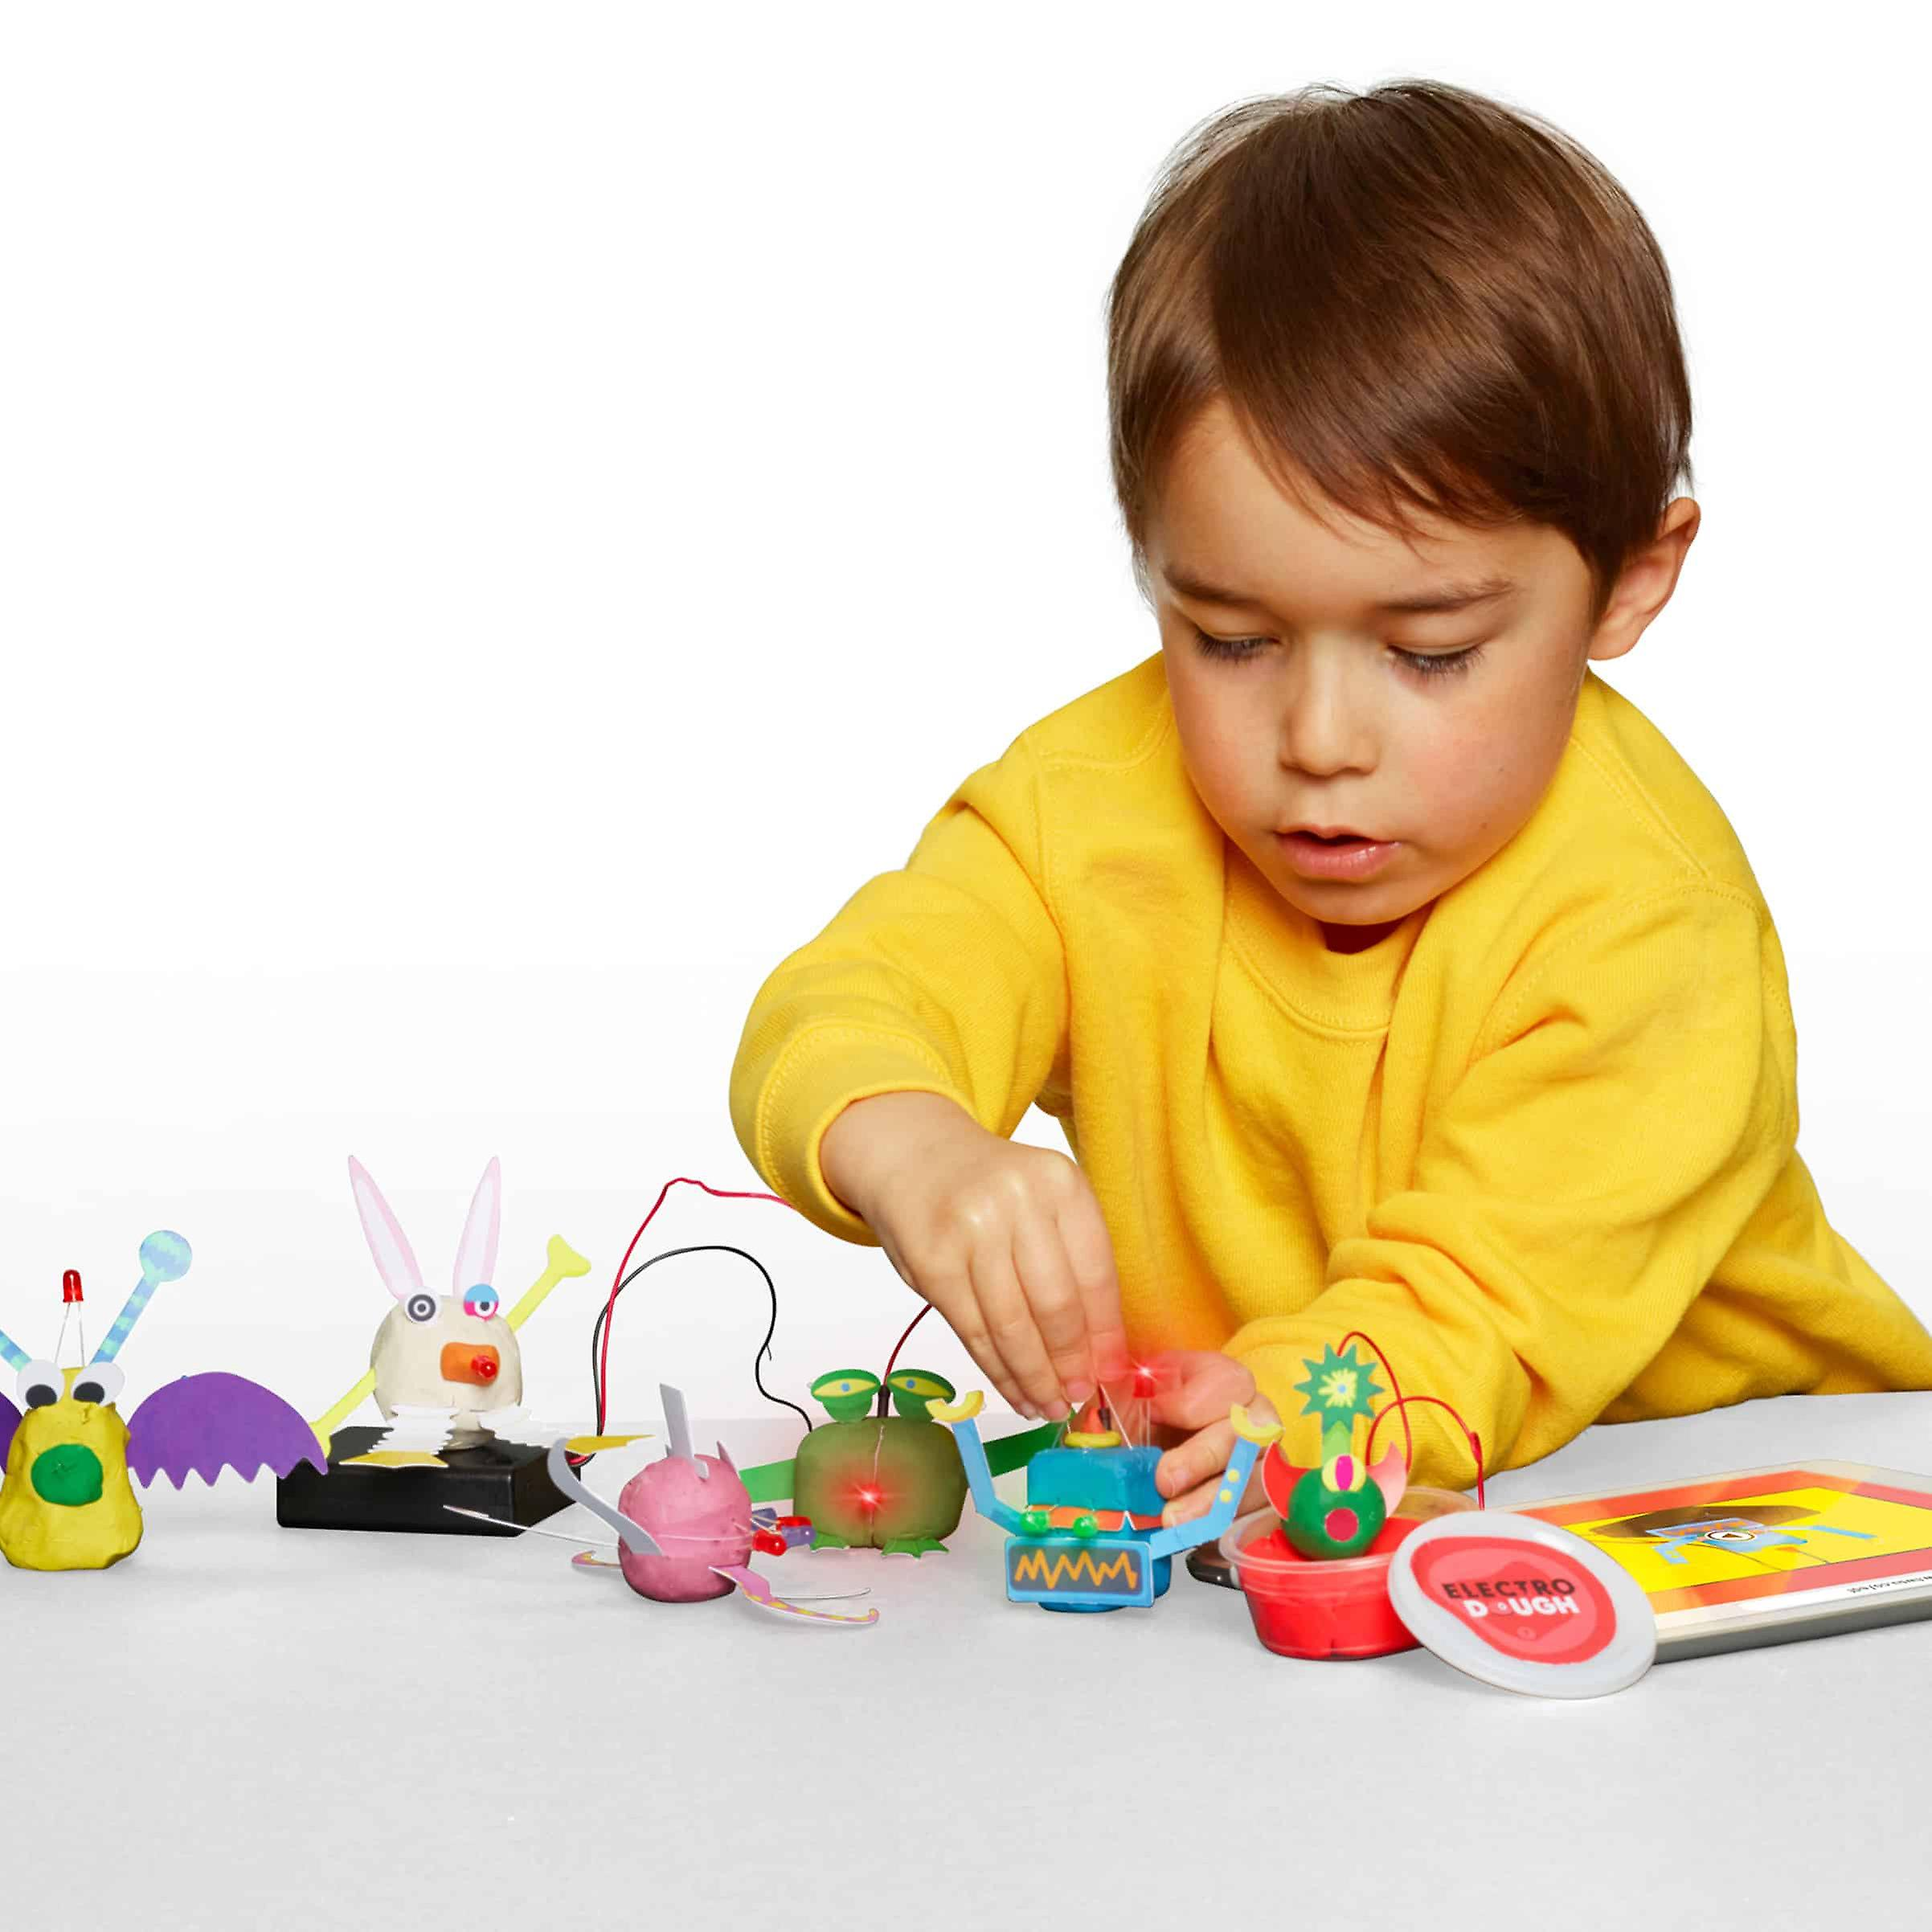 Tech Will Save Us Electro Dough Fantasy Kit | Educational STEAM Toy, Ages 4 and up